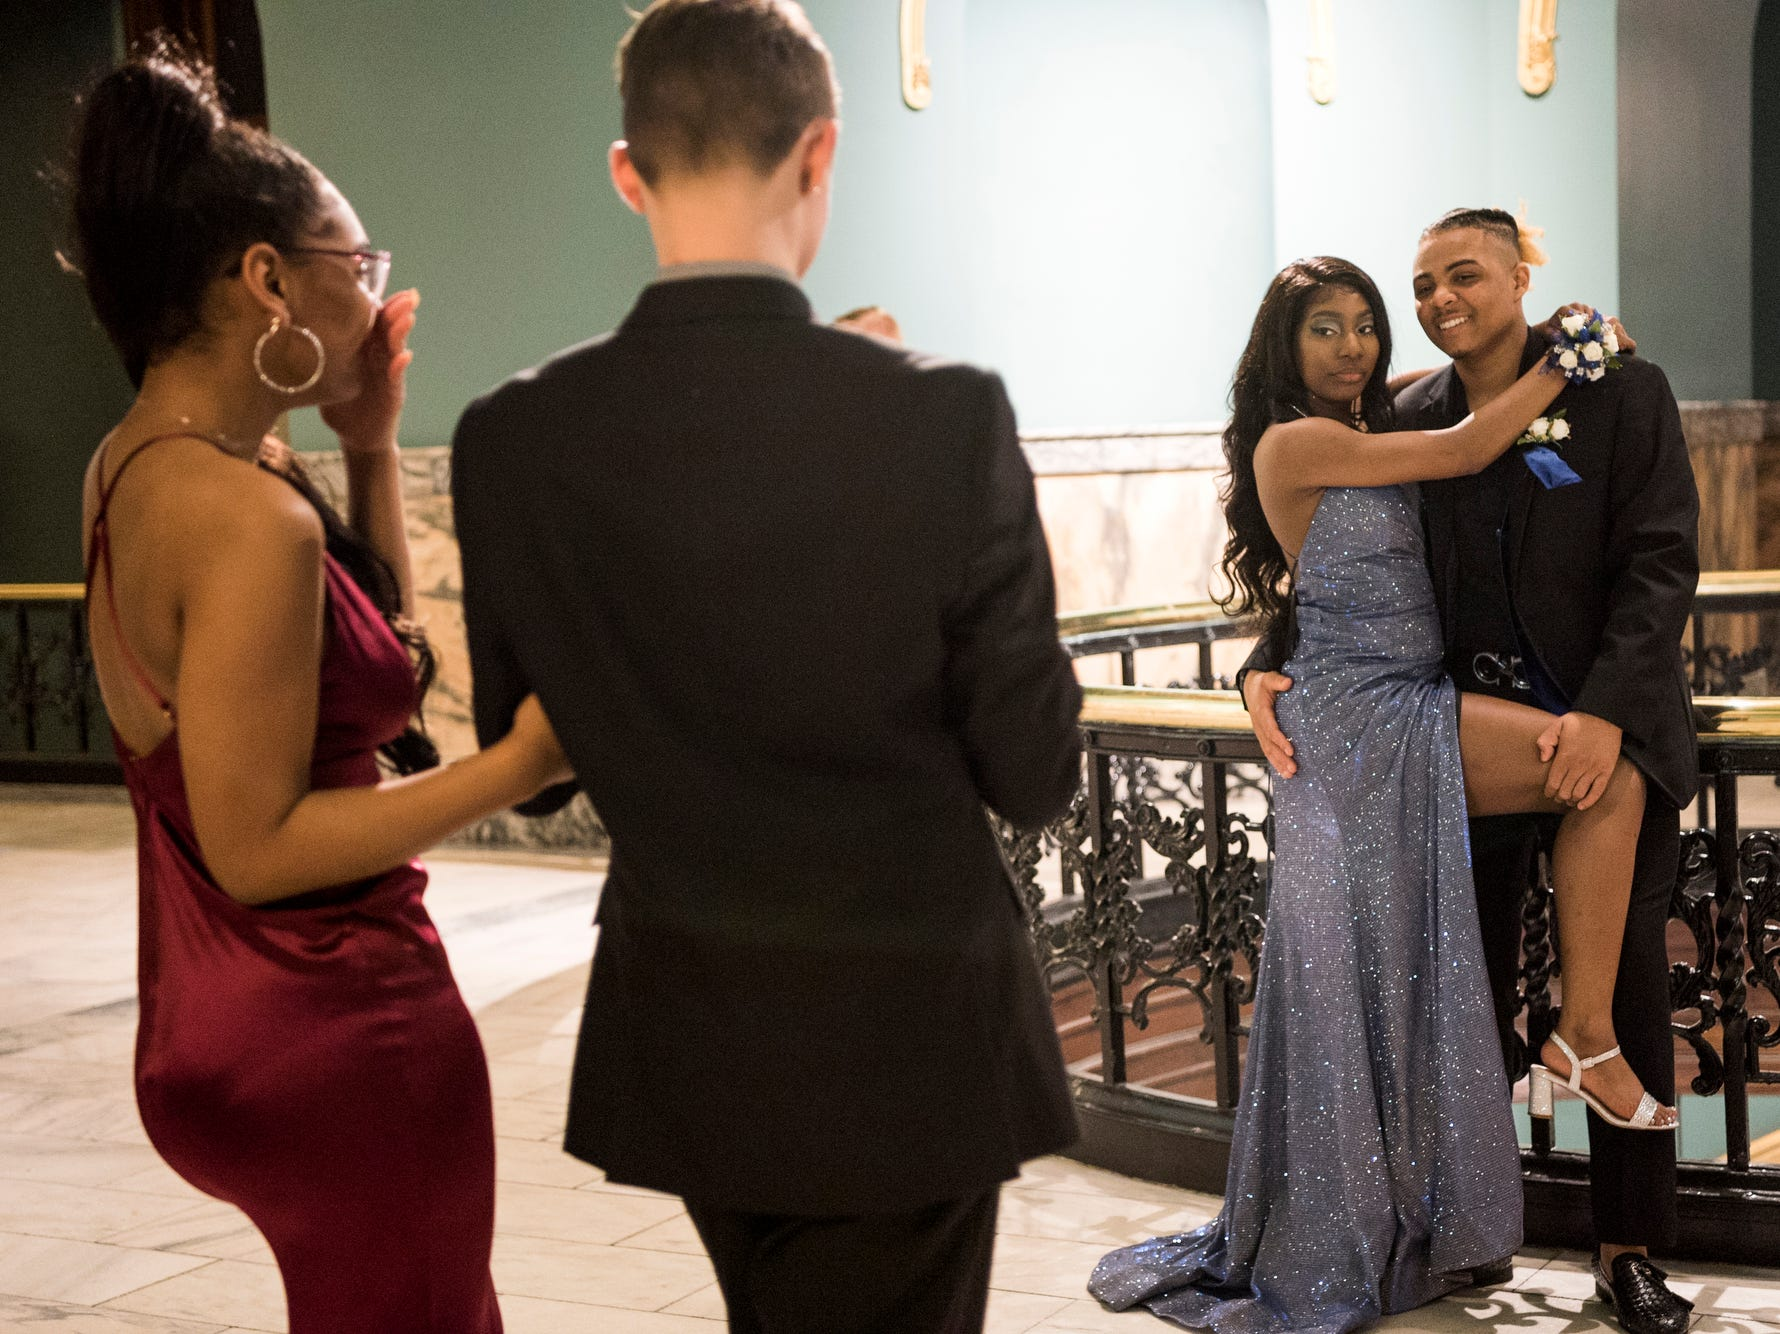 Maleaya Labrador laughs as her date Peyton Lamar takes a picture of their friends Darnell McRath Jr. and Breasia Williams during Bosse High School's prom at the Old Vanderburgh County Courthouse in downtown Evansville, Ind., Saturday, April 6, 2019.